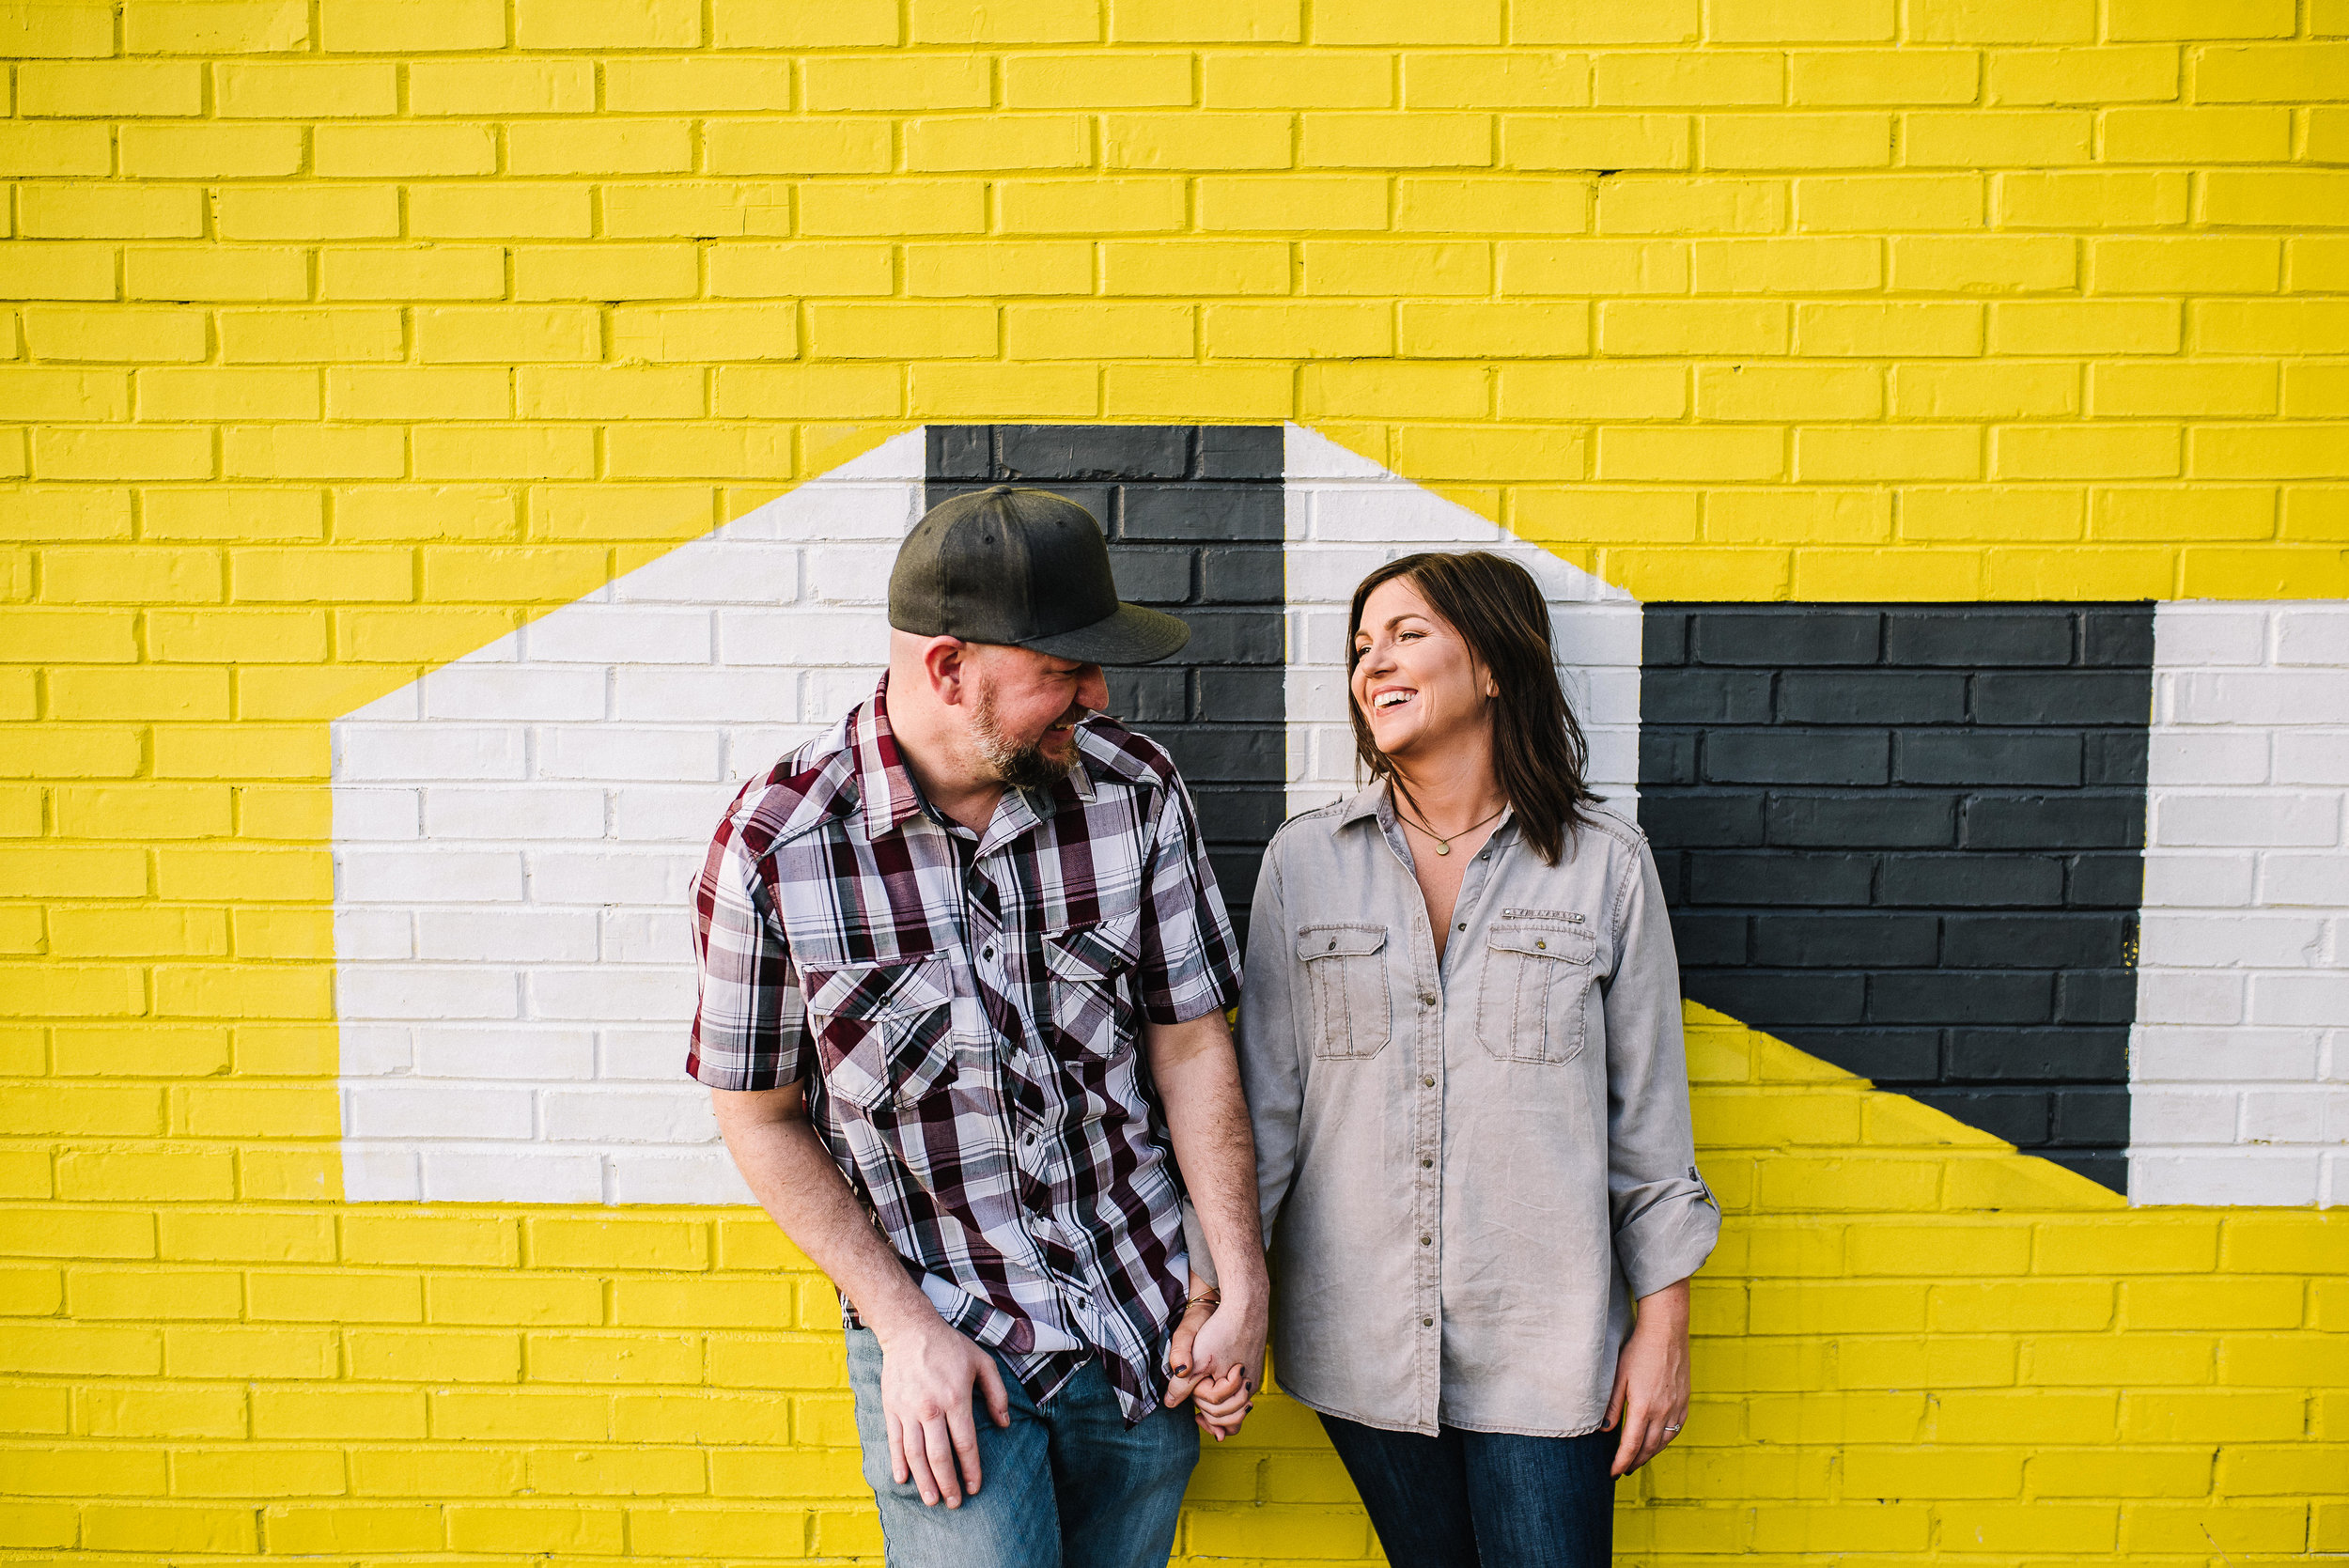 Melissa+Andy_Downtown-Memphis-Engagement-Session_Ashley-Benham-Photography-4321.jpg